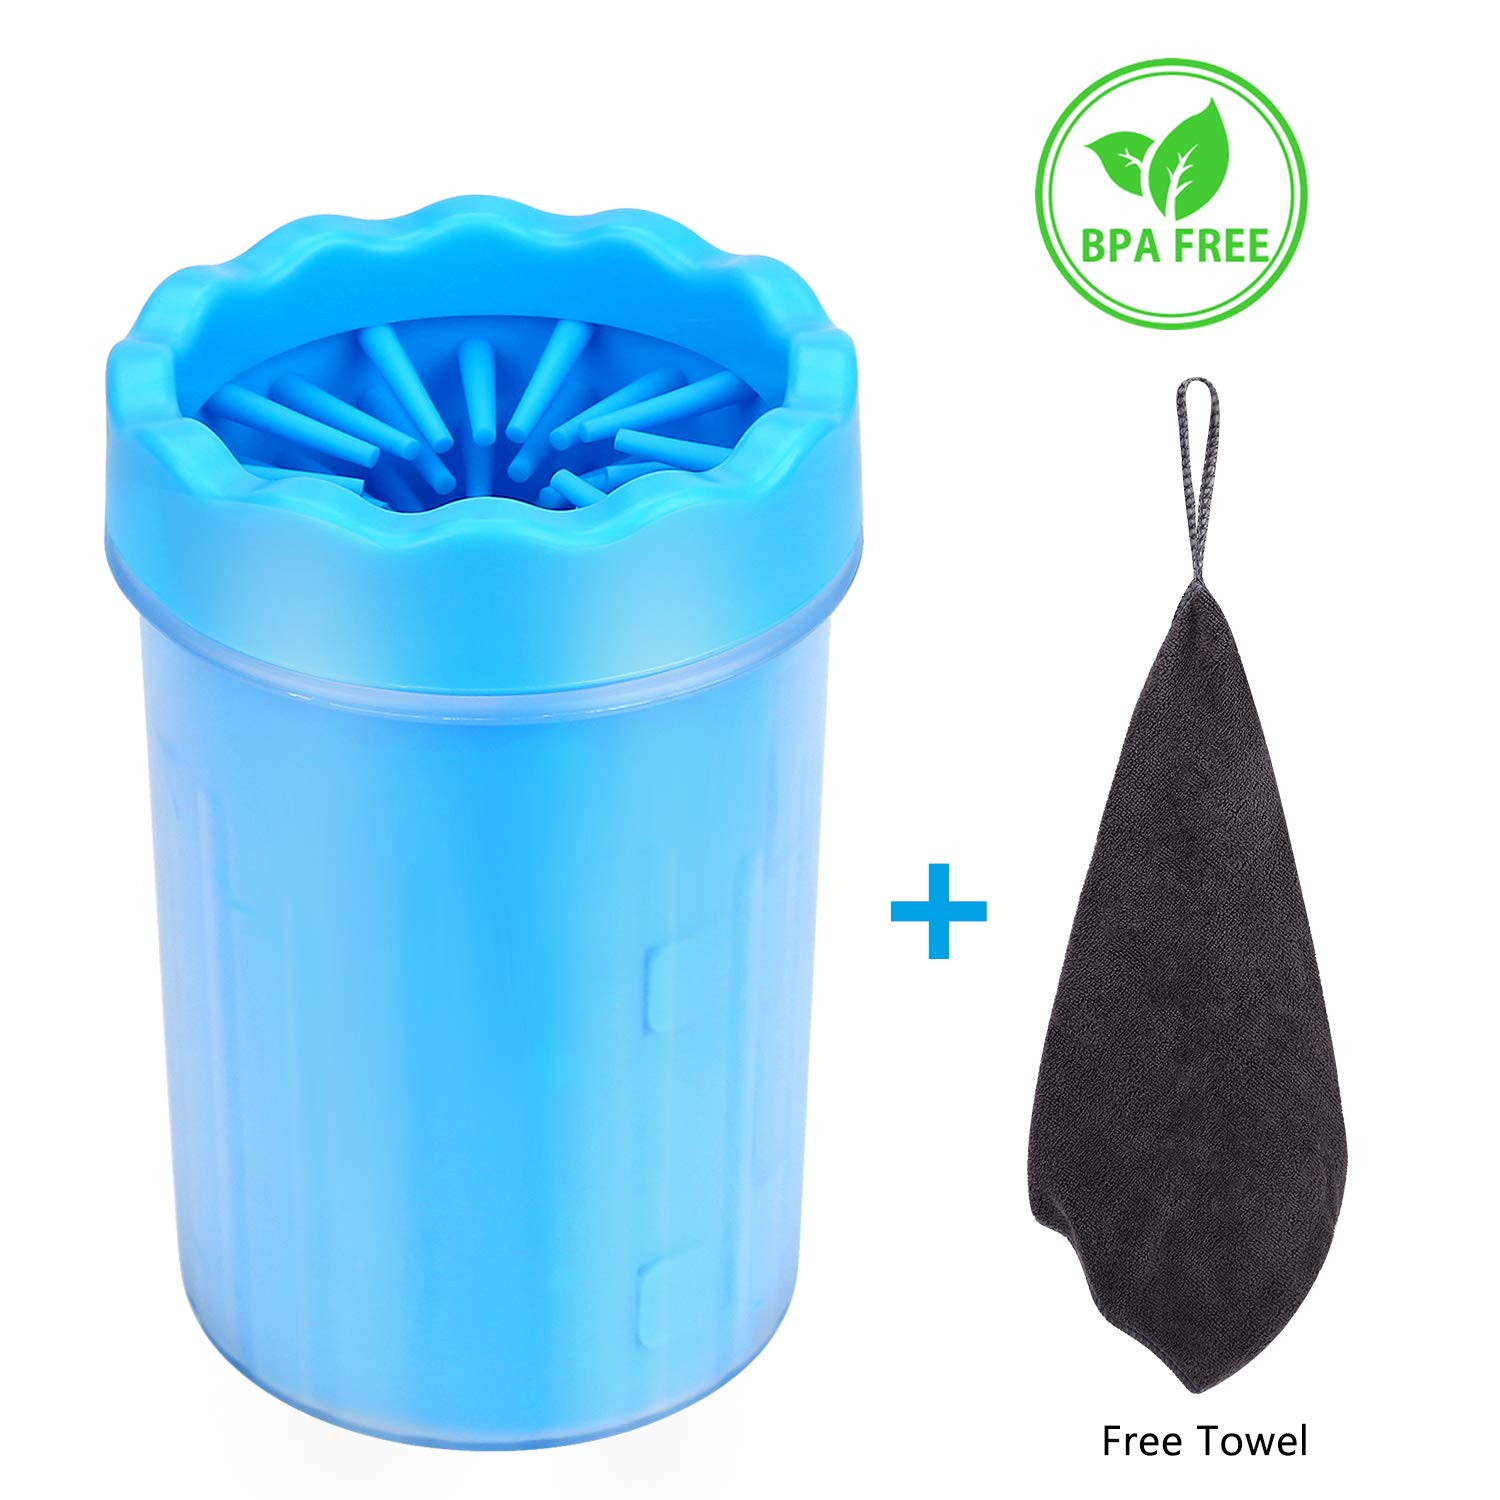 Bojafa Pet Dog Paw Cleaner for Dogs Paw Foot Cleaning Portable Muddy Paw Brush Cleaner Cup for Large Medium Dogs Paw Quickwash Paw Cleaner